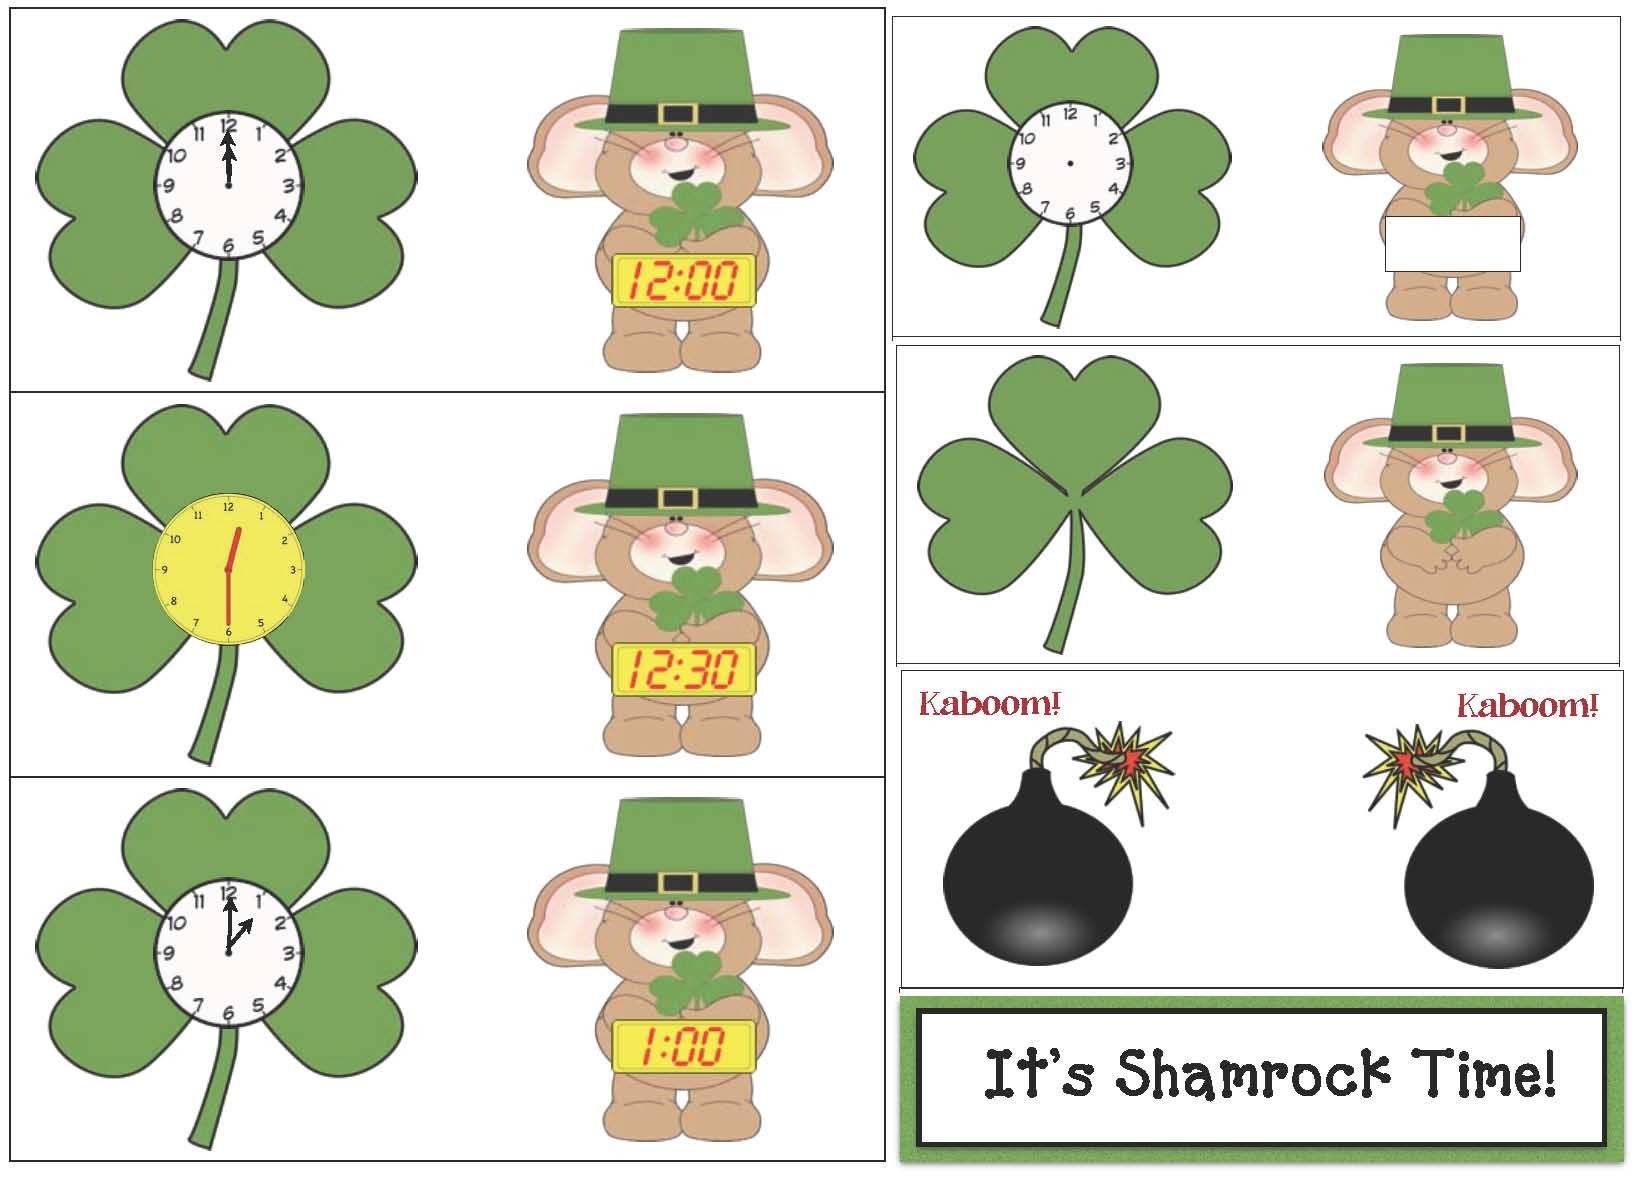 shamrock activities, shamrock clock, clock pattern, shamrock telling time cards, telling time activities to the hour, telling time activities to the half hour, digital time activities, analog time activities, 1.MD.s, common core st. patrick's day, st. patty's day clocks, st. patrick's day games, st. patrick's day activities, activities for st. patrick's day for preschool kindergarten and first grade, st. patrick's day centers, st. patrick's day math centers, telling time lessons, telling time to the hour lessons, telling time certificates, elling time games,